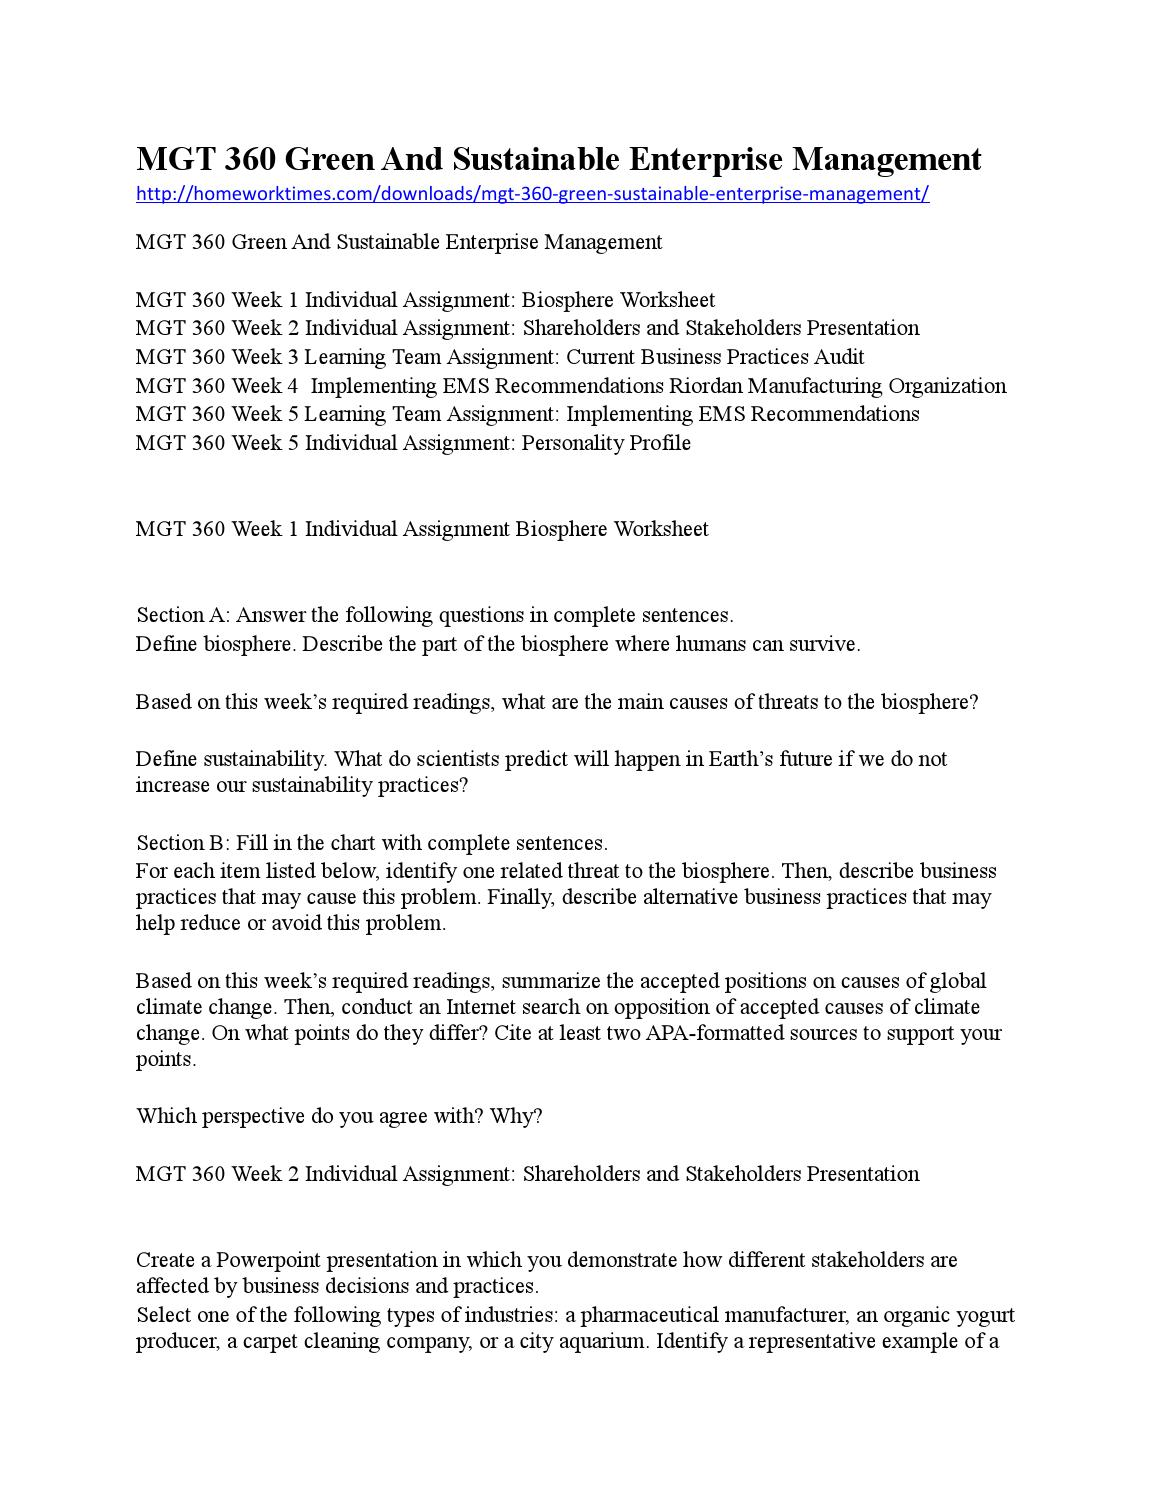 worksheet Biosphere Worksheet mgt 360 green and sustainable enterprise management by hwtimes issuu